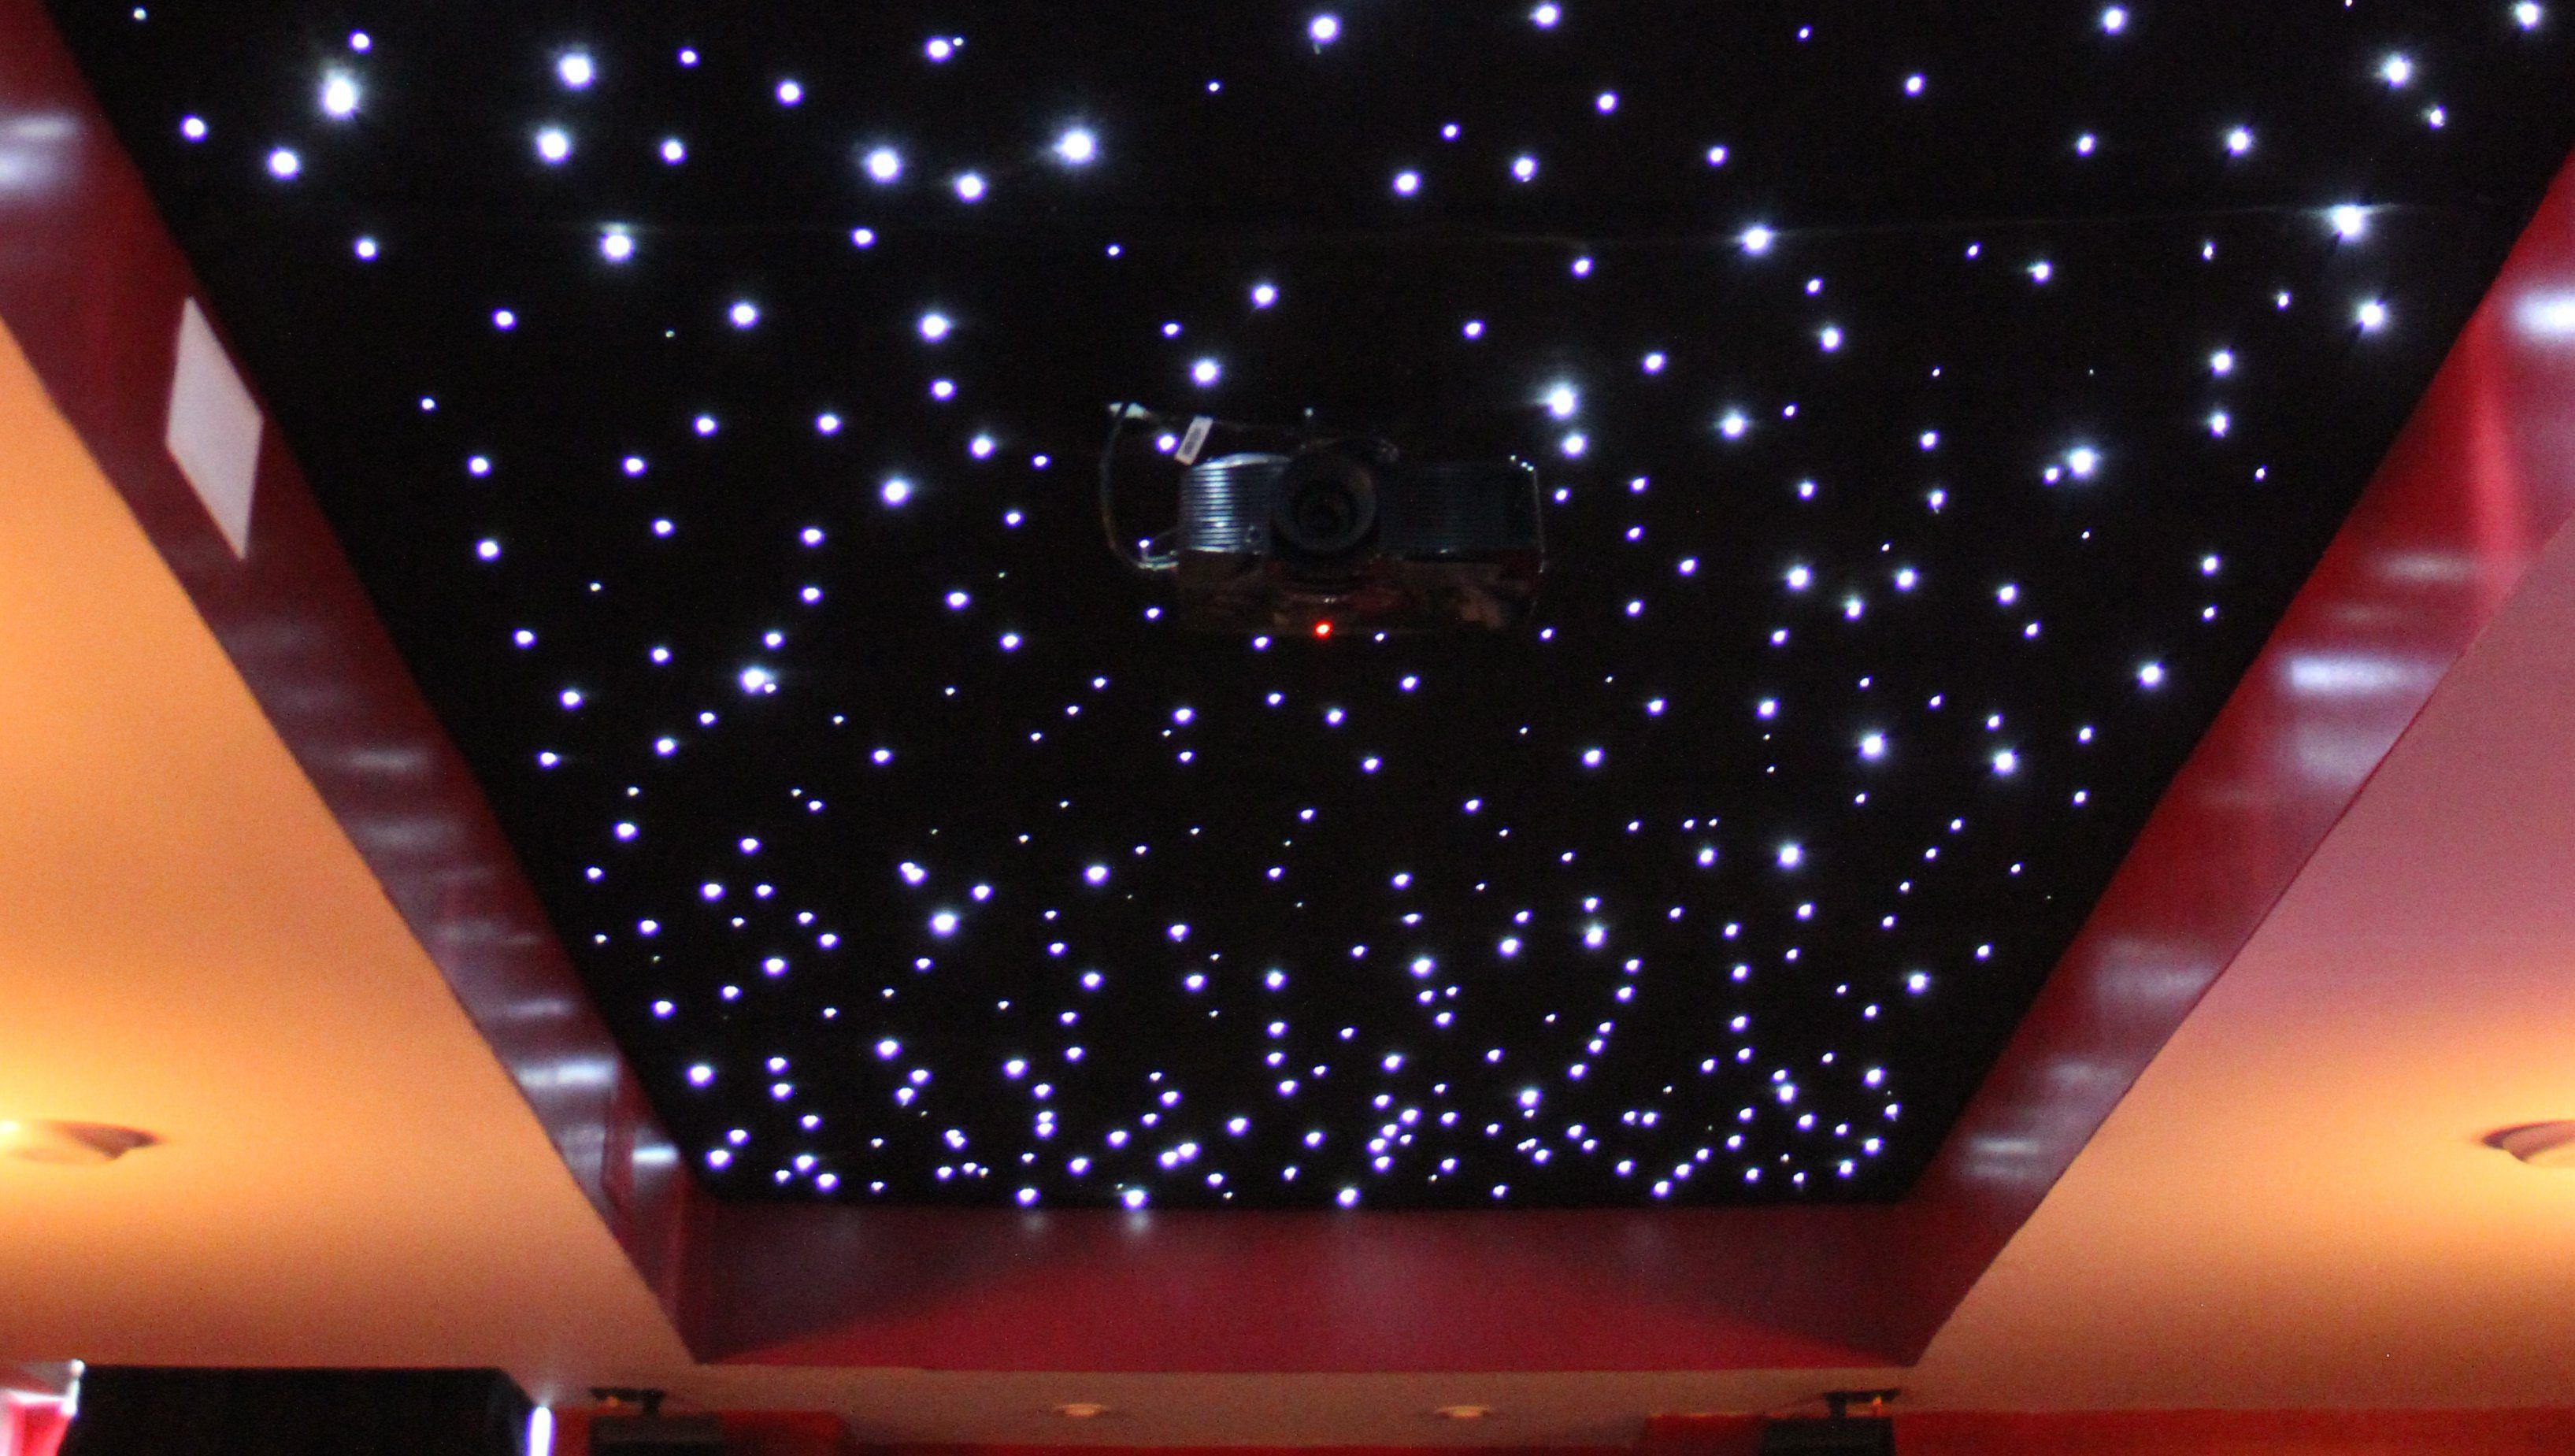 Installing A Fiber Optic Starfield Ceiling Diy Projects I